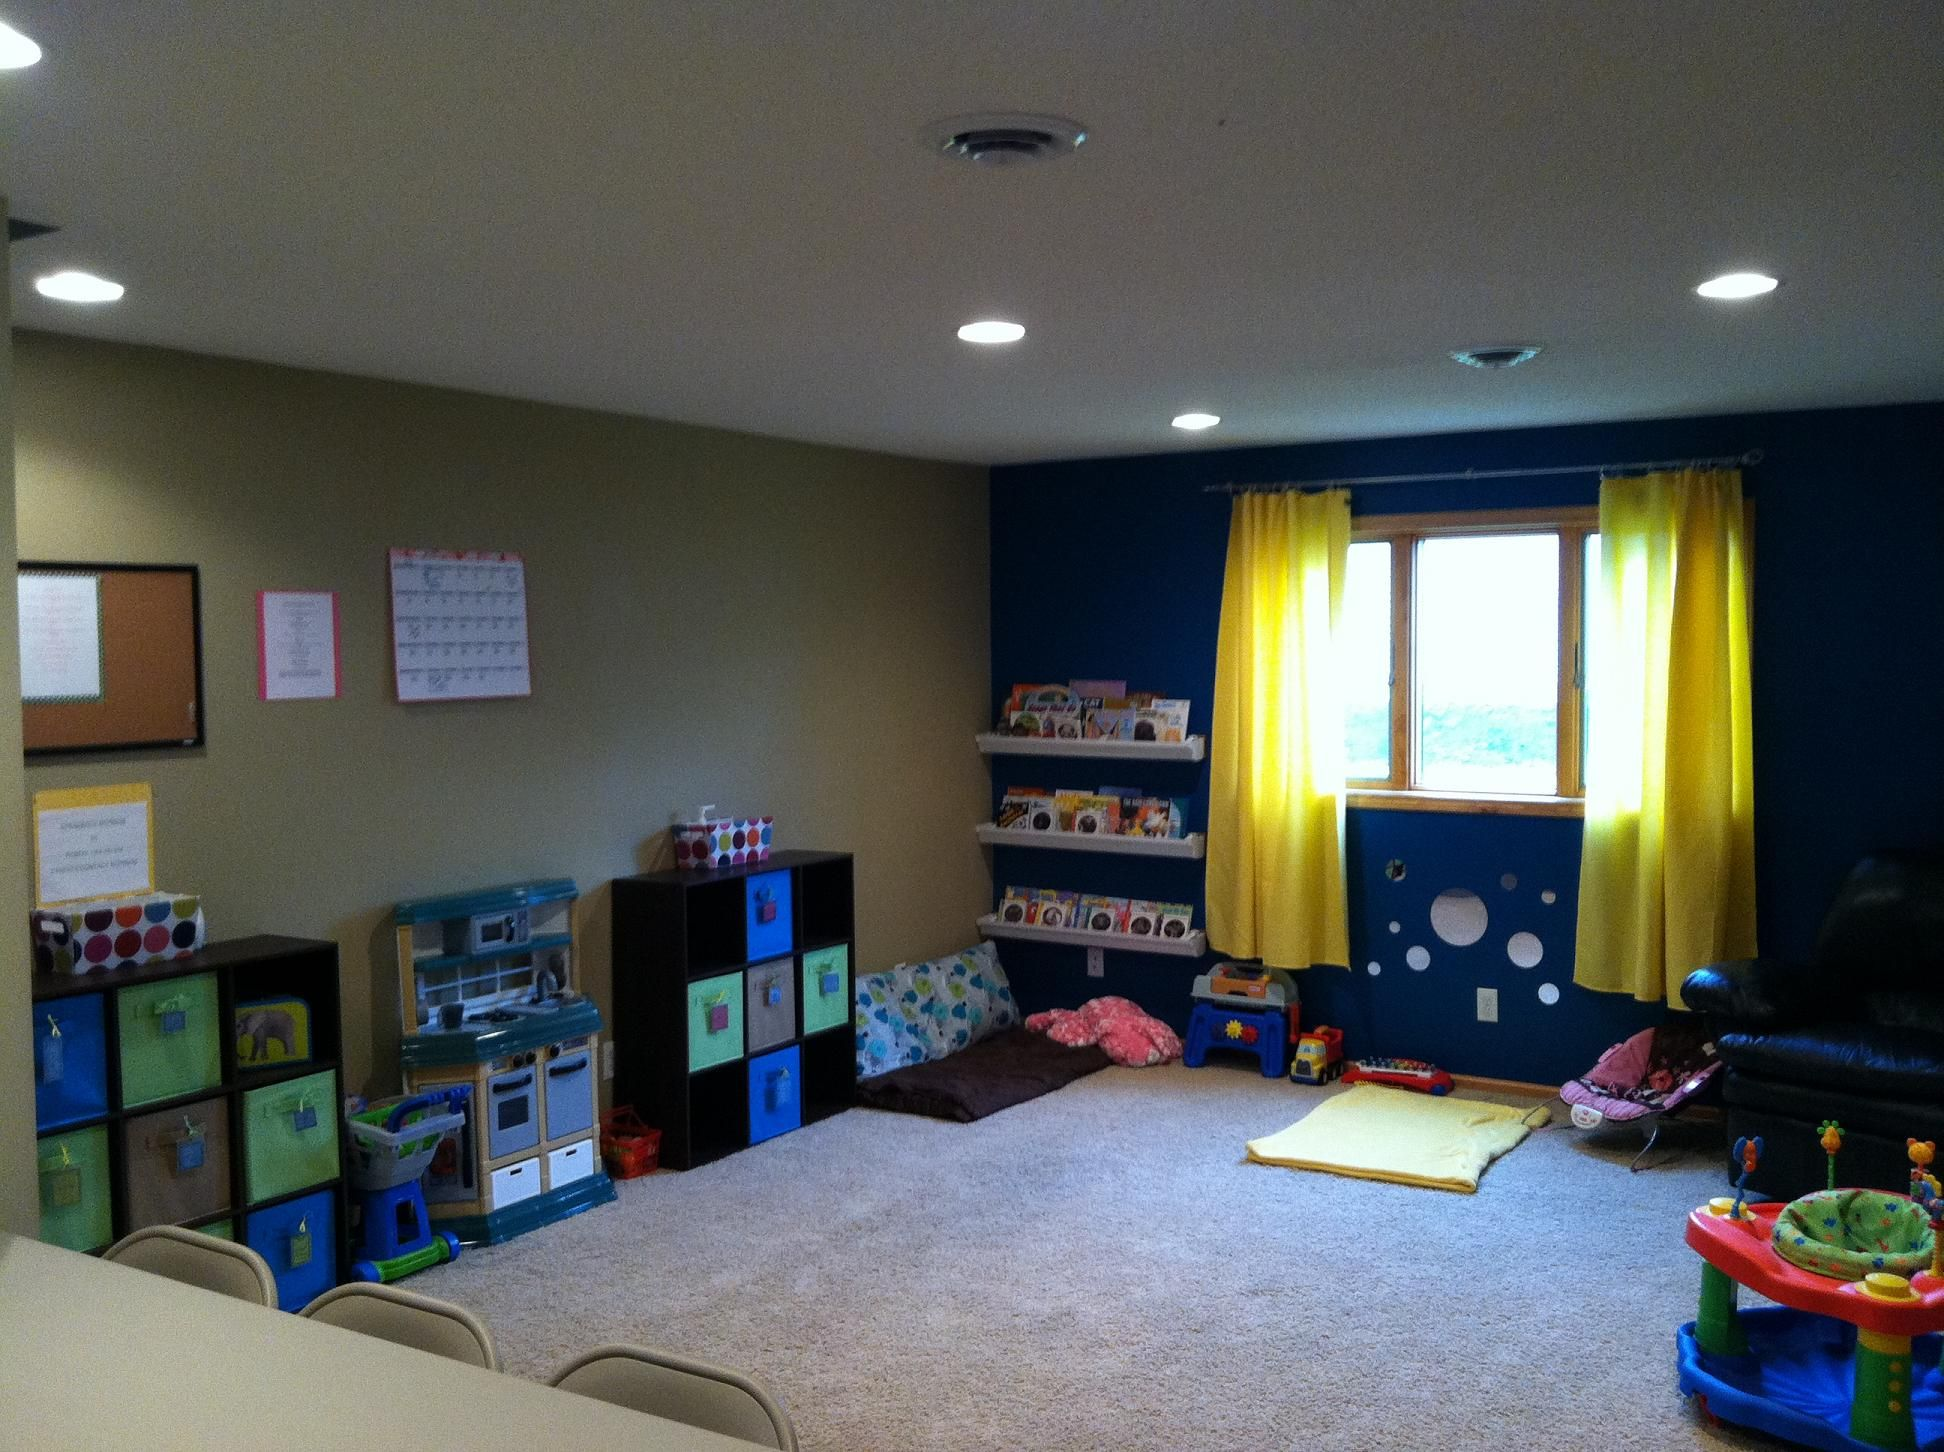 In Home Daycare Layout 2 Home Daycare Home Daycare Rooms Home